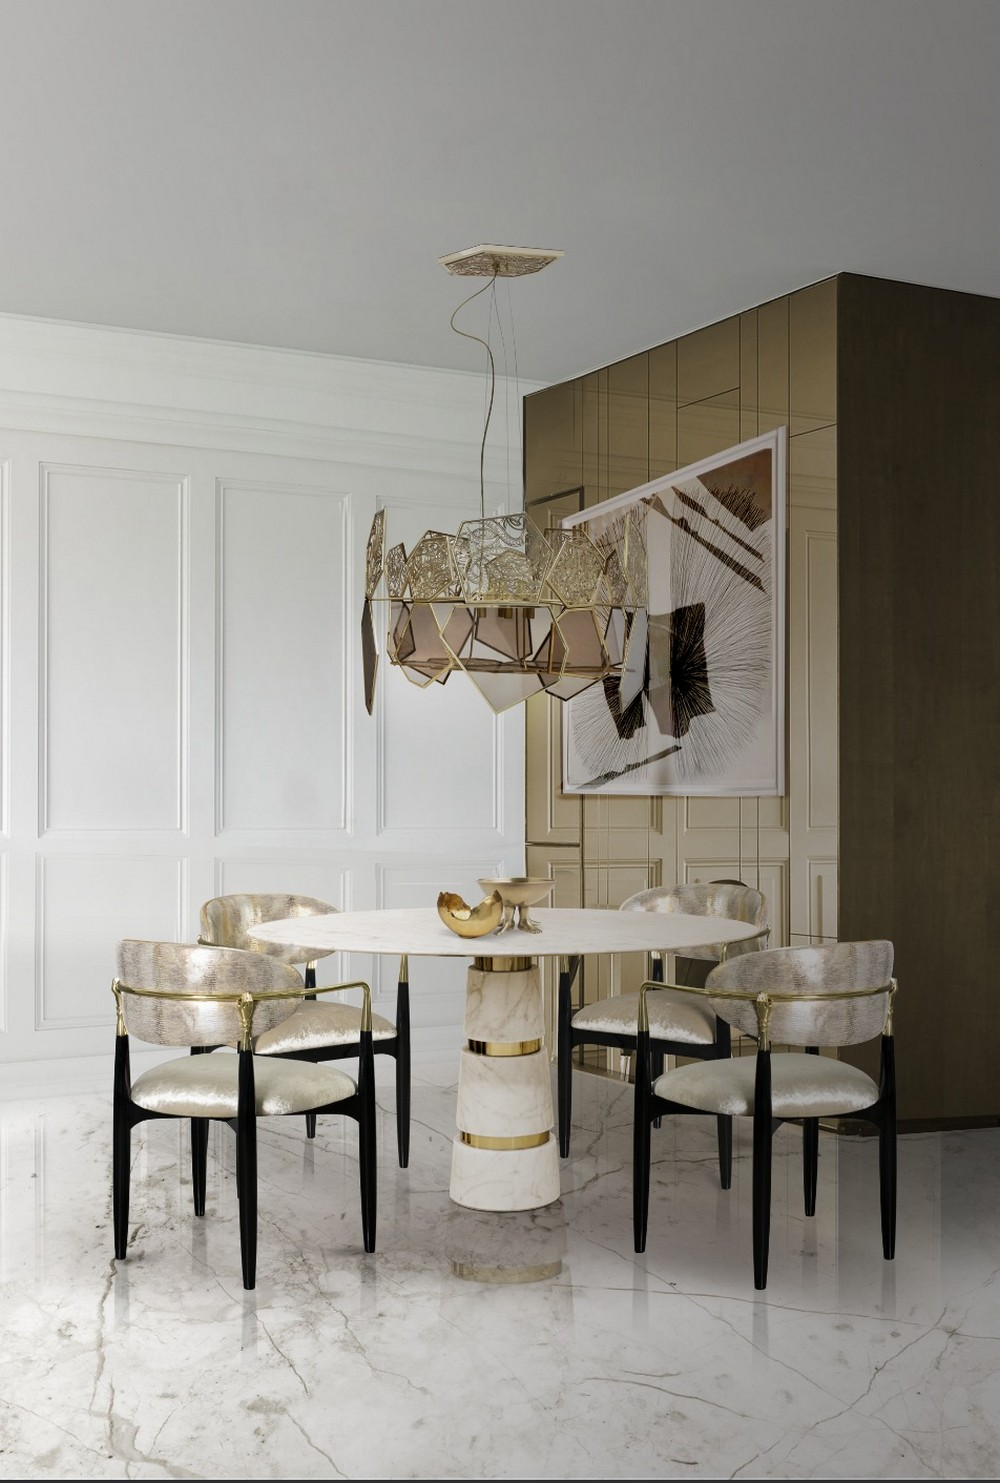 The Perfect Element For Stylish Settings: 10 Dining Tables You'll Love dining tables The Perfect Element For Stylish Settings: 25 Dining Tables You'll Love WhatsApp Image 2021 01 04 at 10